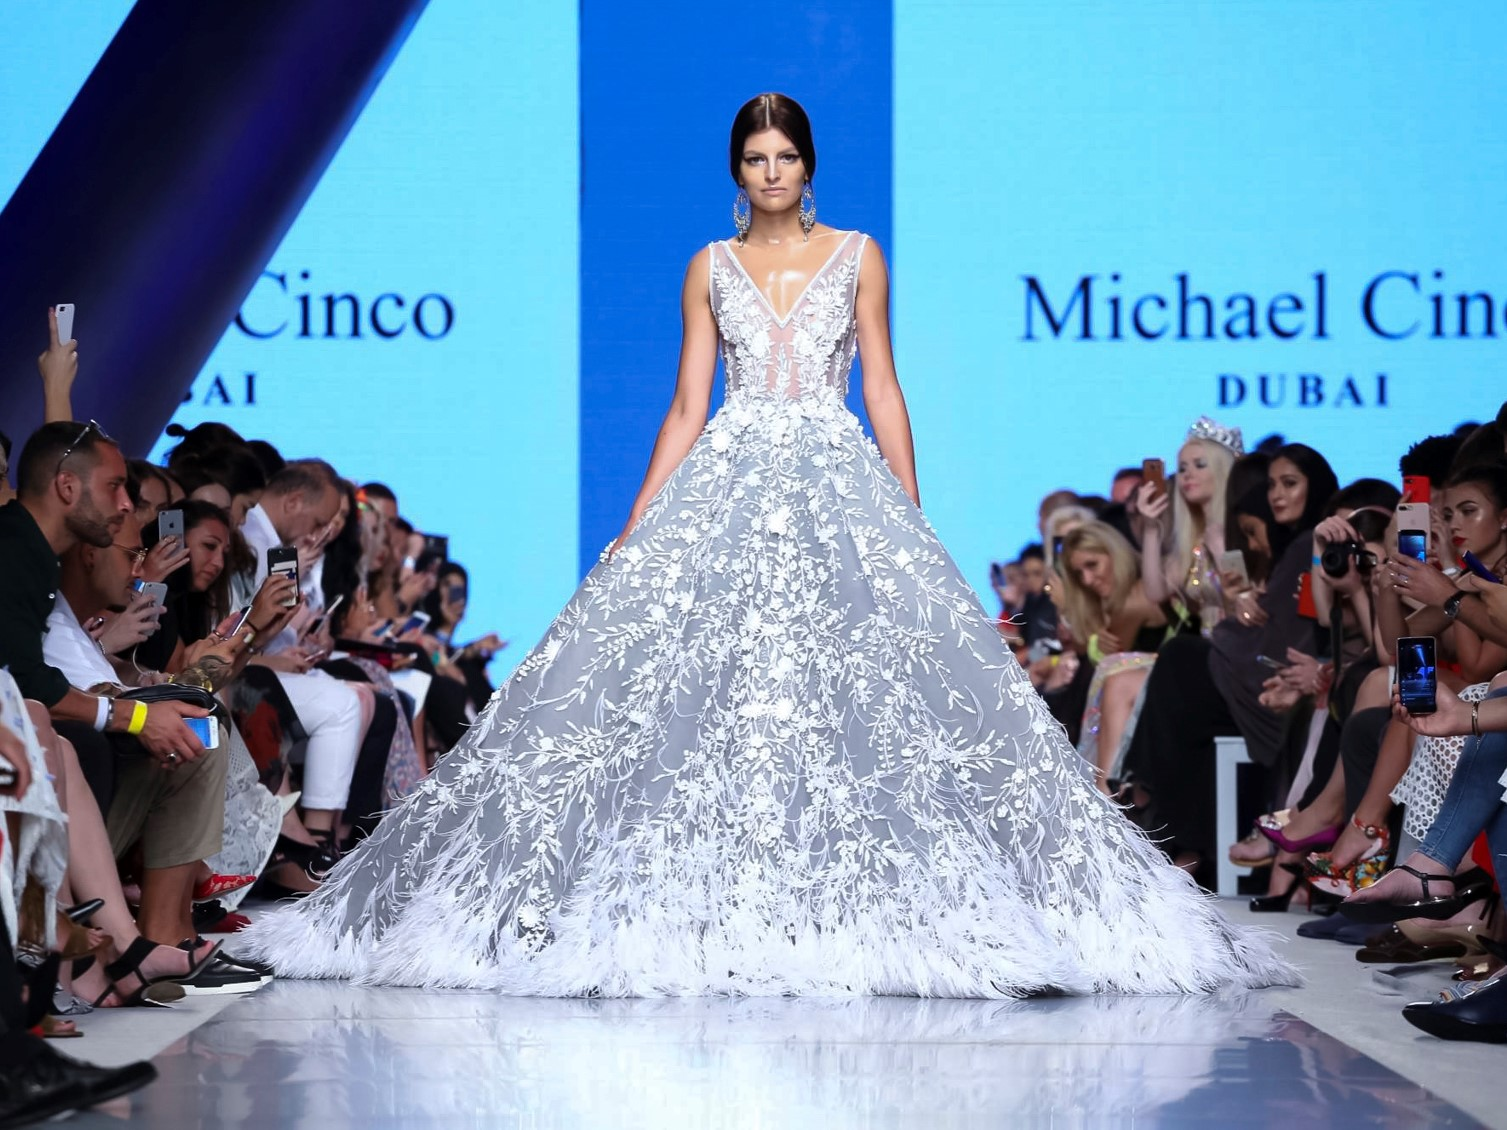 Michael Cinco Fashion Show, Ready to Wear Collection Fall Winter 2017 in Dubai